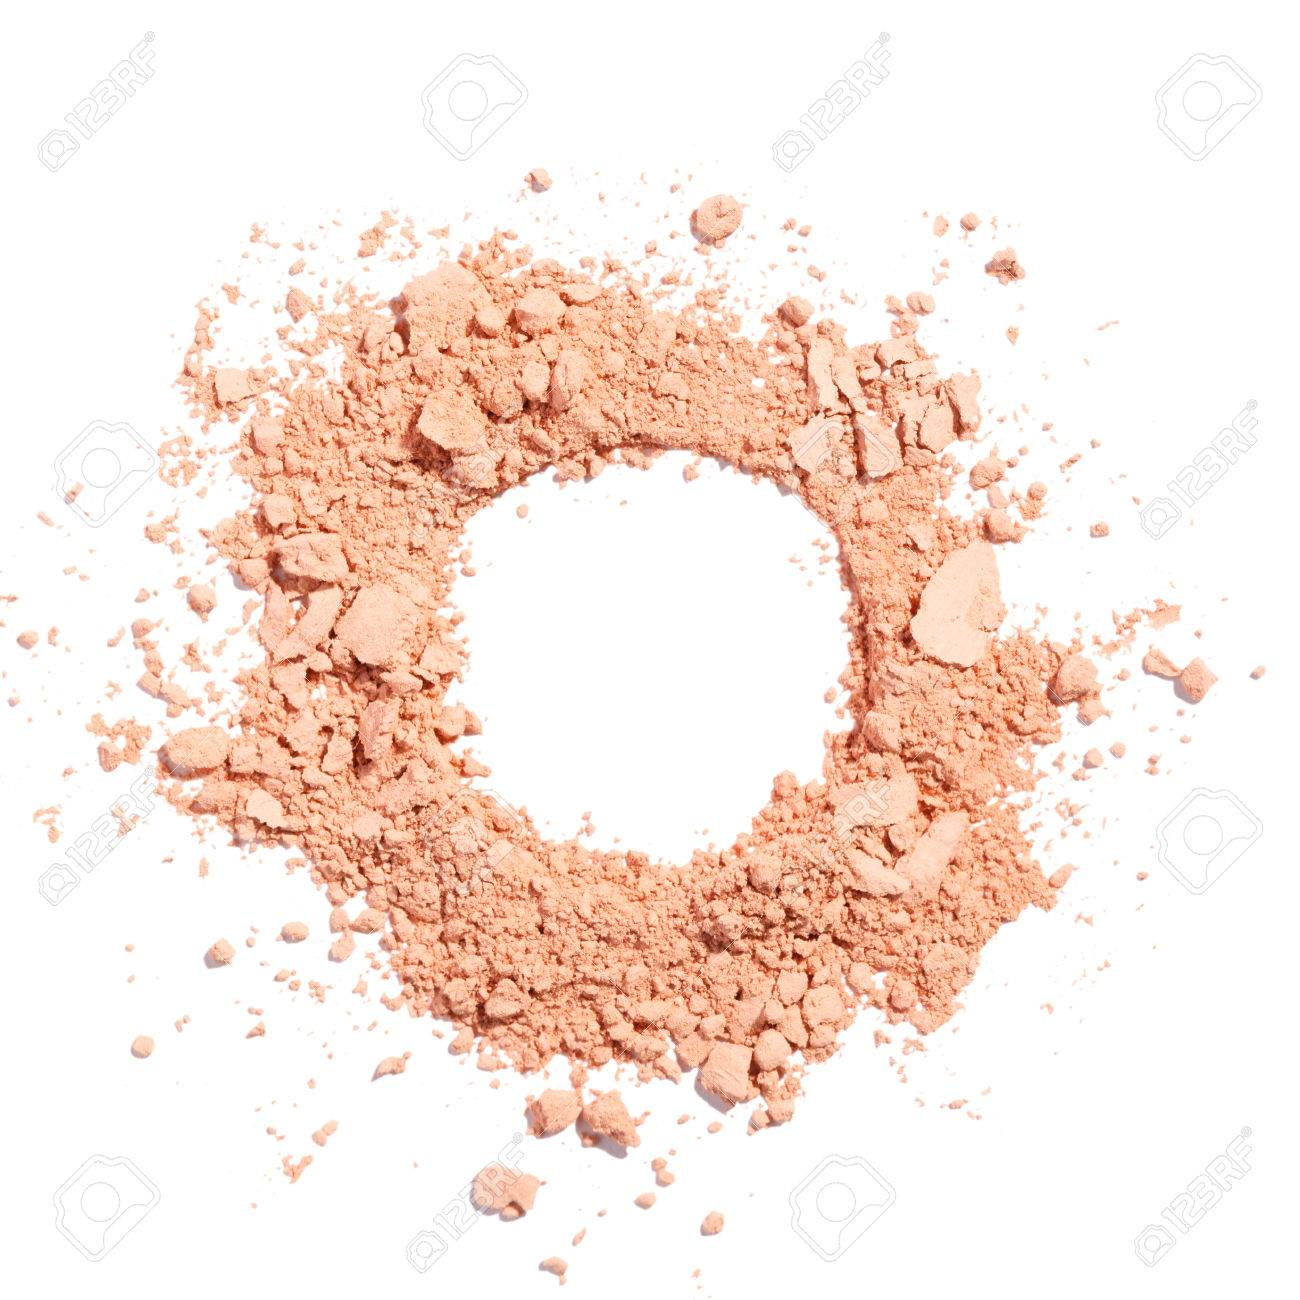 Cosmetic powder beige color crushed blush palette isolated on white - 83976030